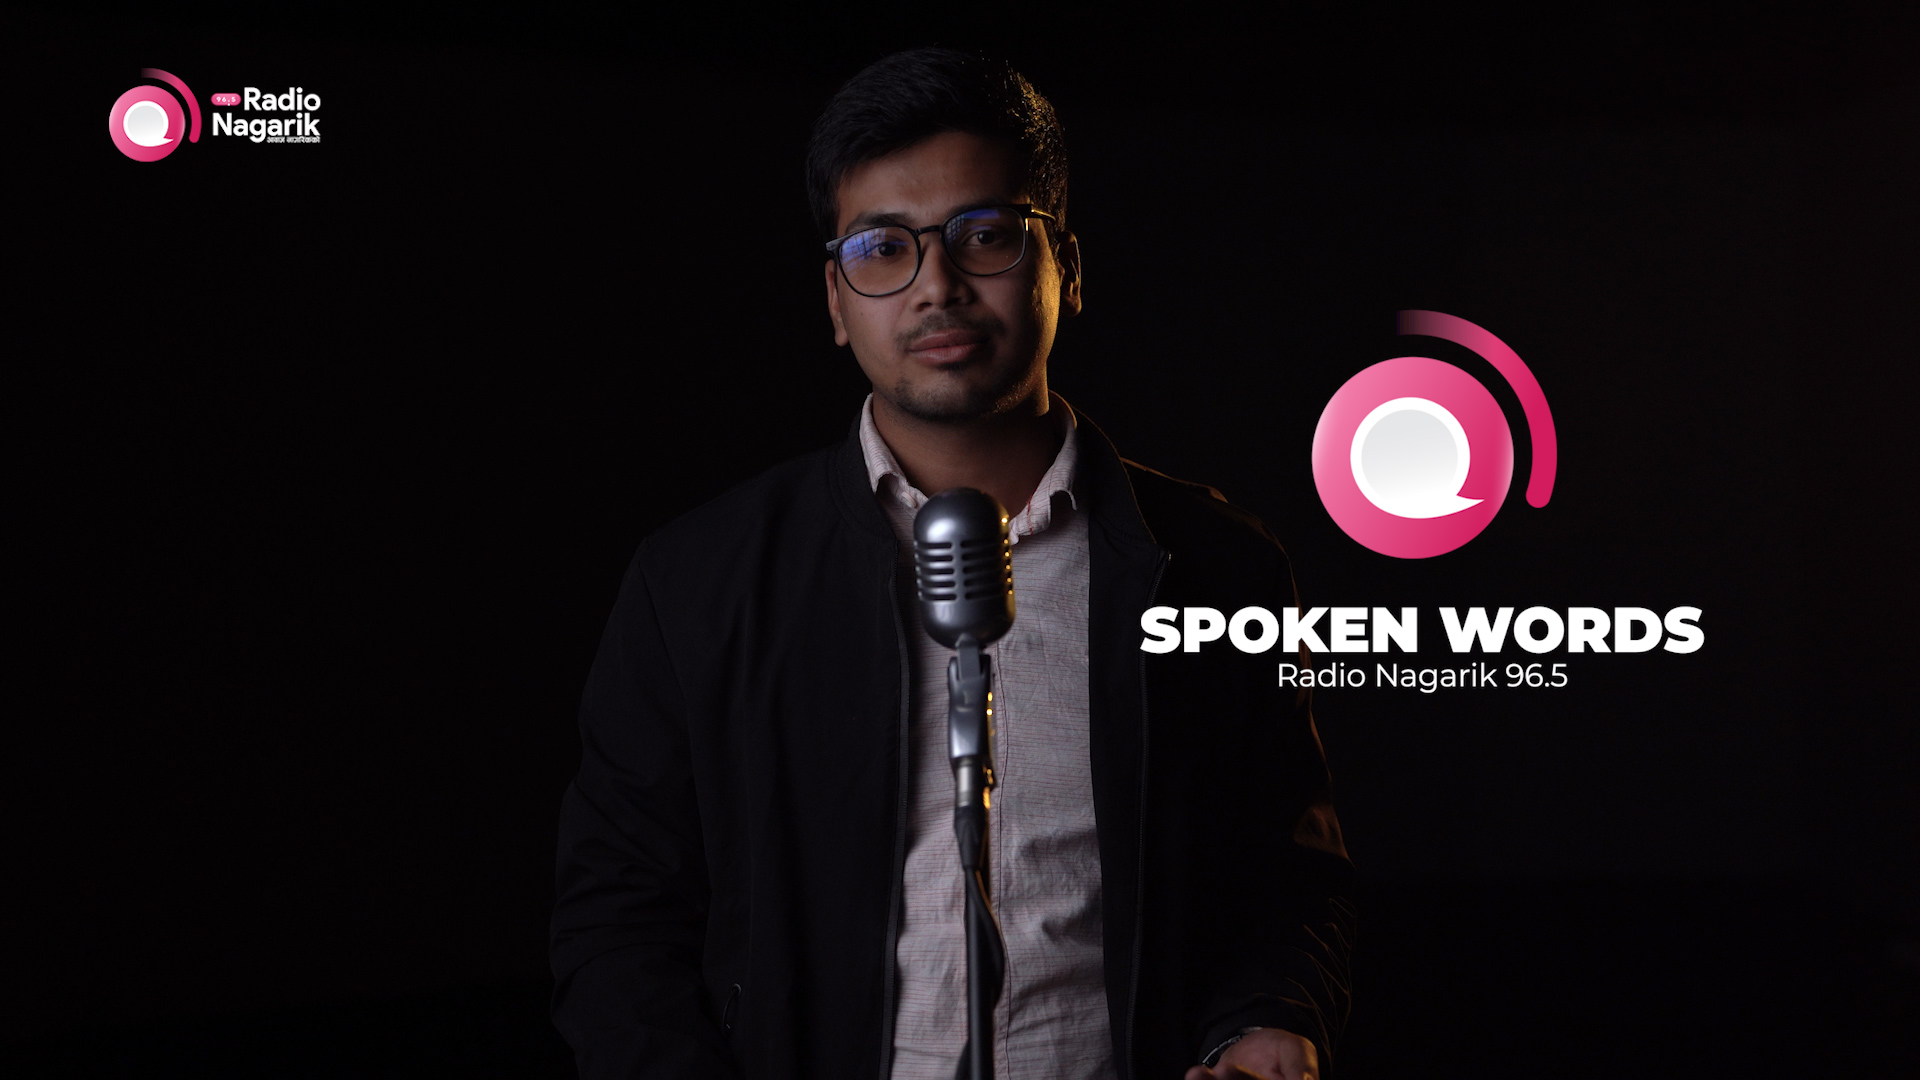 Kina Ki Ma Ek Purush Ho | Spoken Words performed by Ritik Mishra